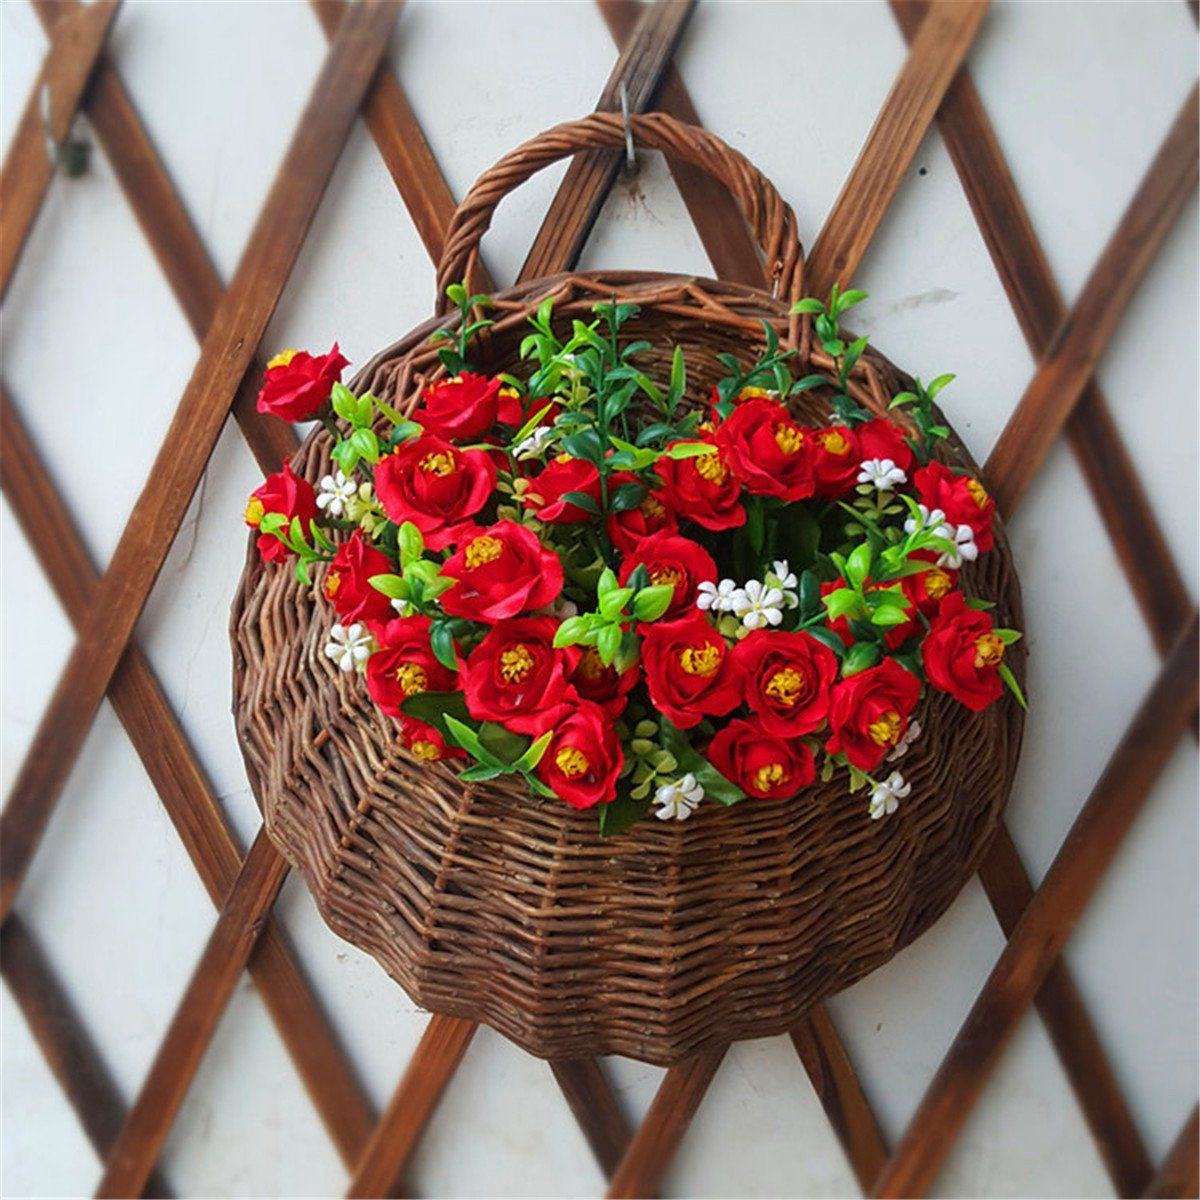 Artificial Flowers Wall Mounted Basket Wall Hanging Plant Pots Wicker Wall Basket Hanging Planters For Garden Wedding Wall Home Decoration Door Decor Shopee Indonesia